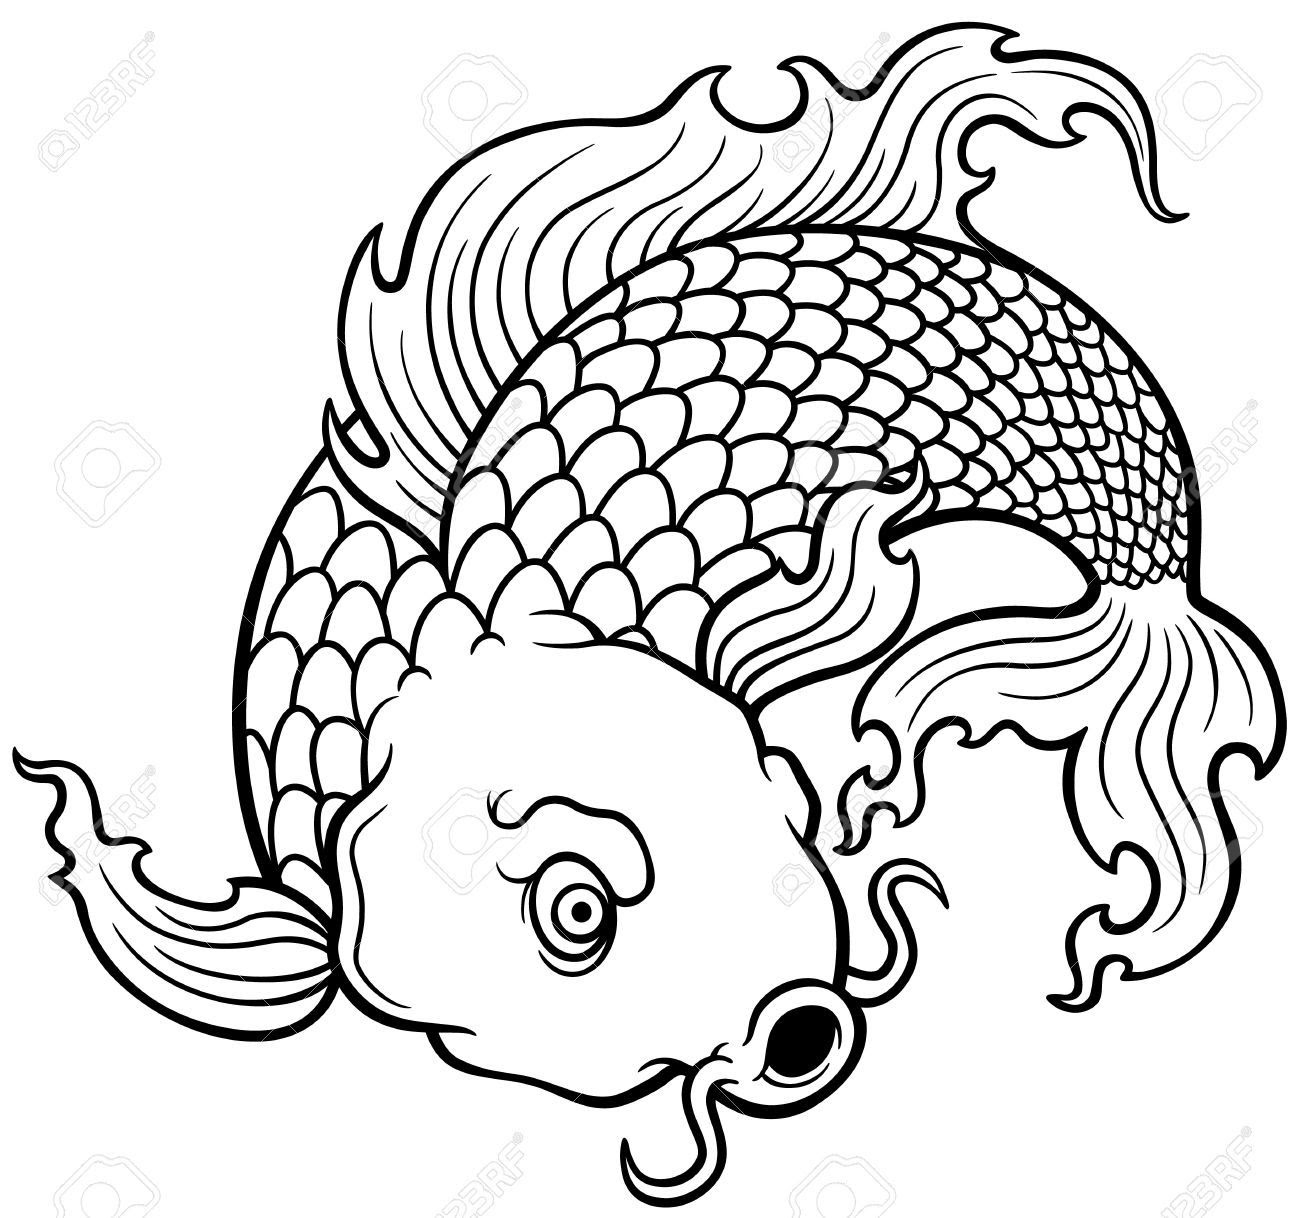 Japanese Koi Drawing   Free download on ClipArtMag